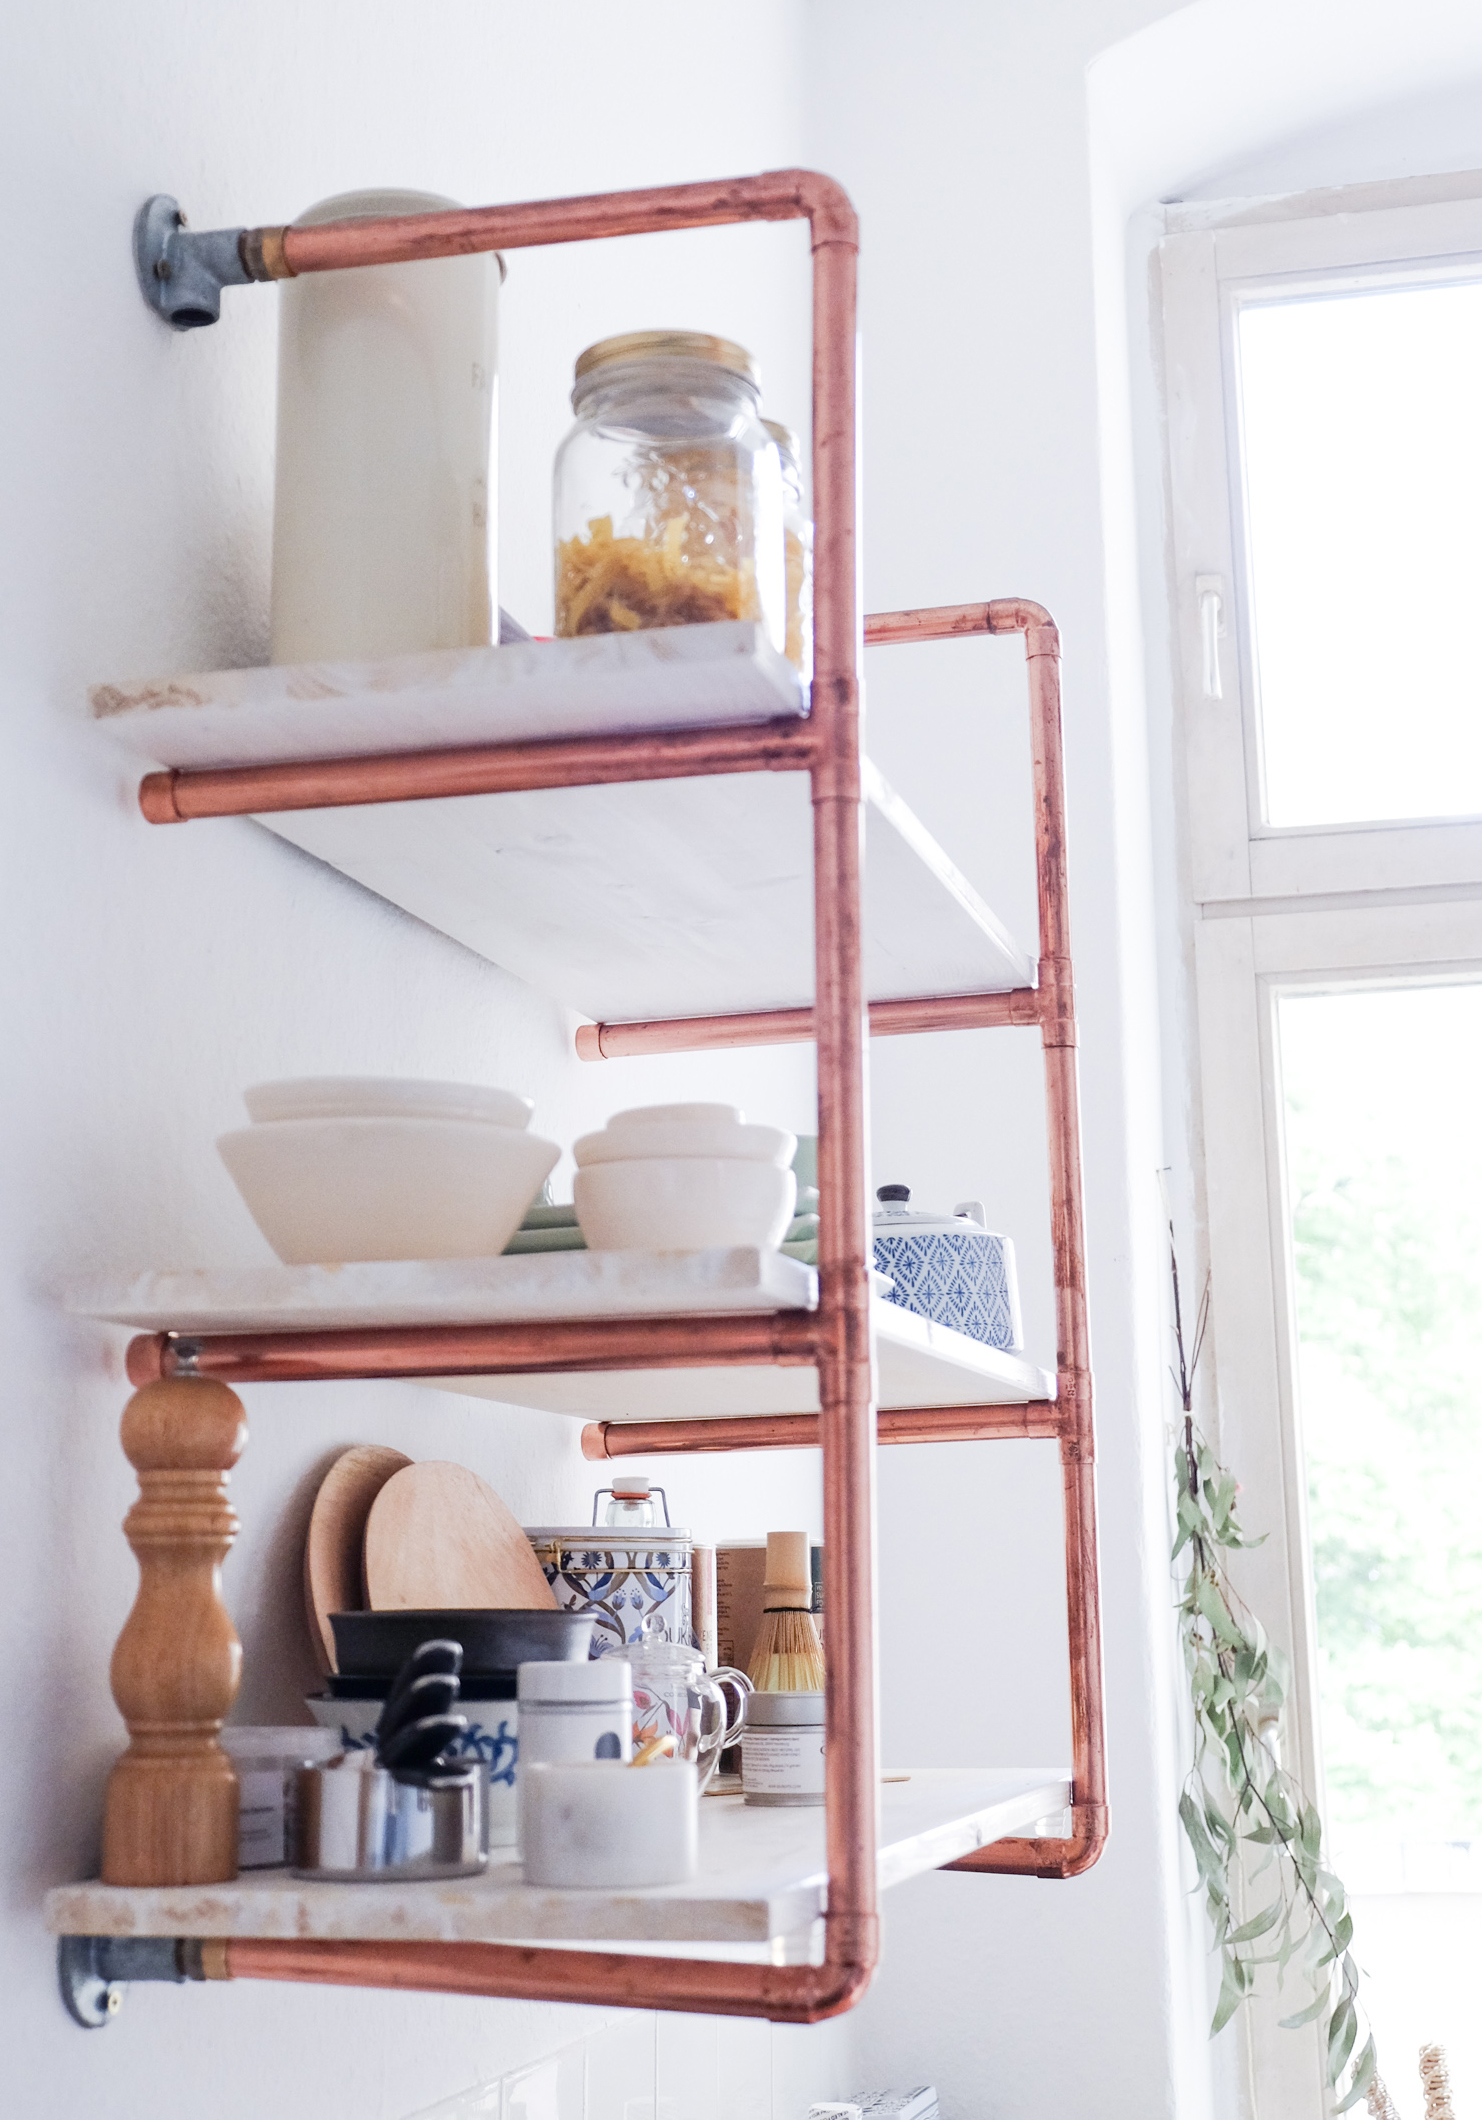 DIY copper piping and wood shelving unit